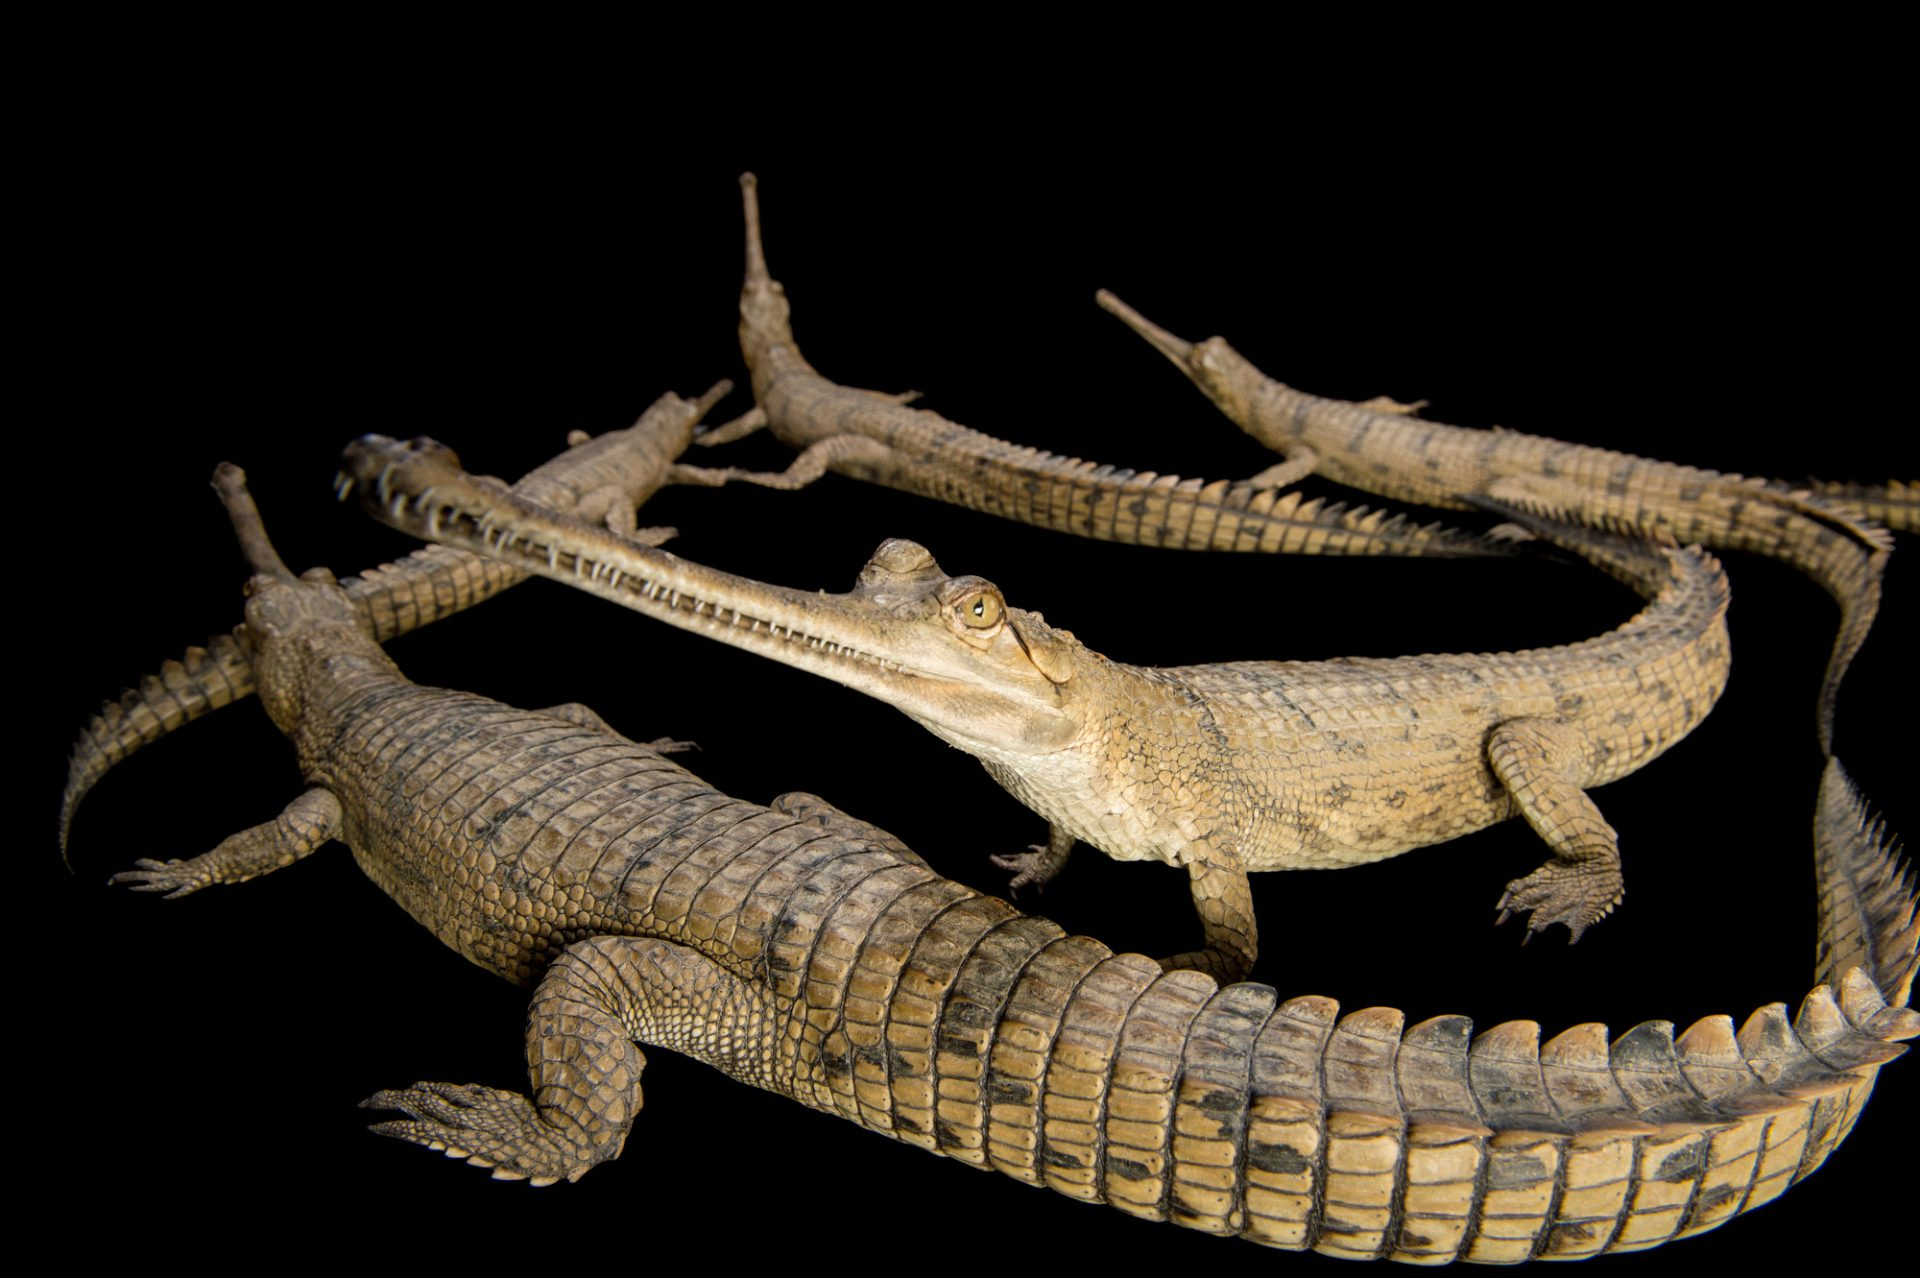 Picture of a critically endangered (IUCN) and federally endangered gharials (Gavialis gangeticus) at the Kukrail Gharial and Turtle Rehabilitation Centre in Lucknow, India.